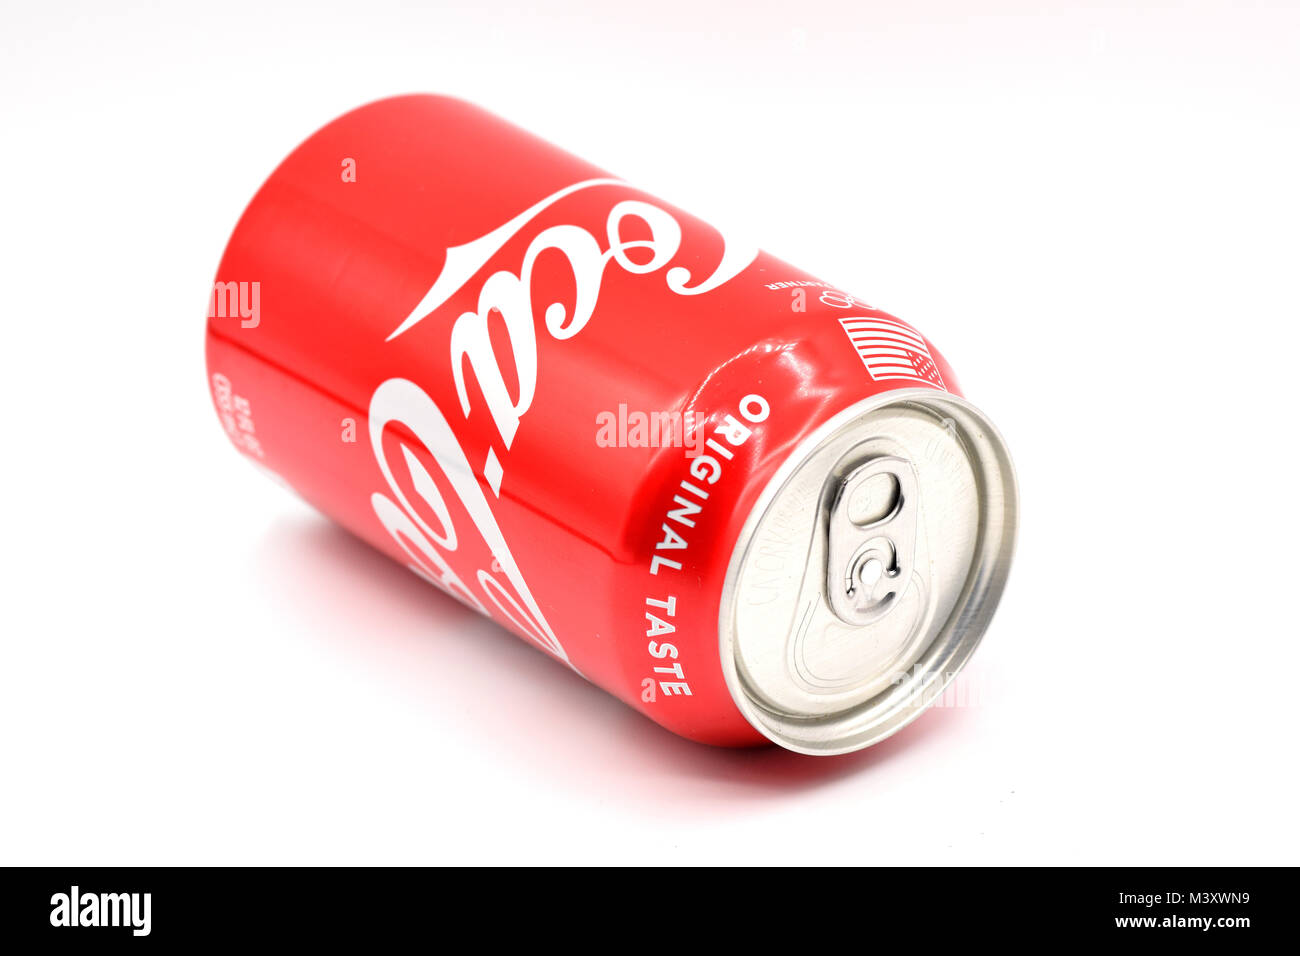 Ridgewood, NY, USA: candy-red Coca-Cola can arranged on a seamless white background. - Stock Image